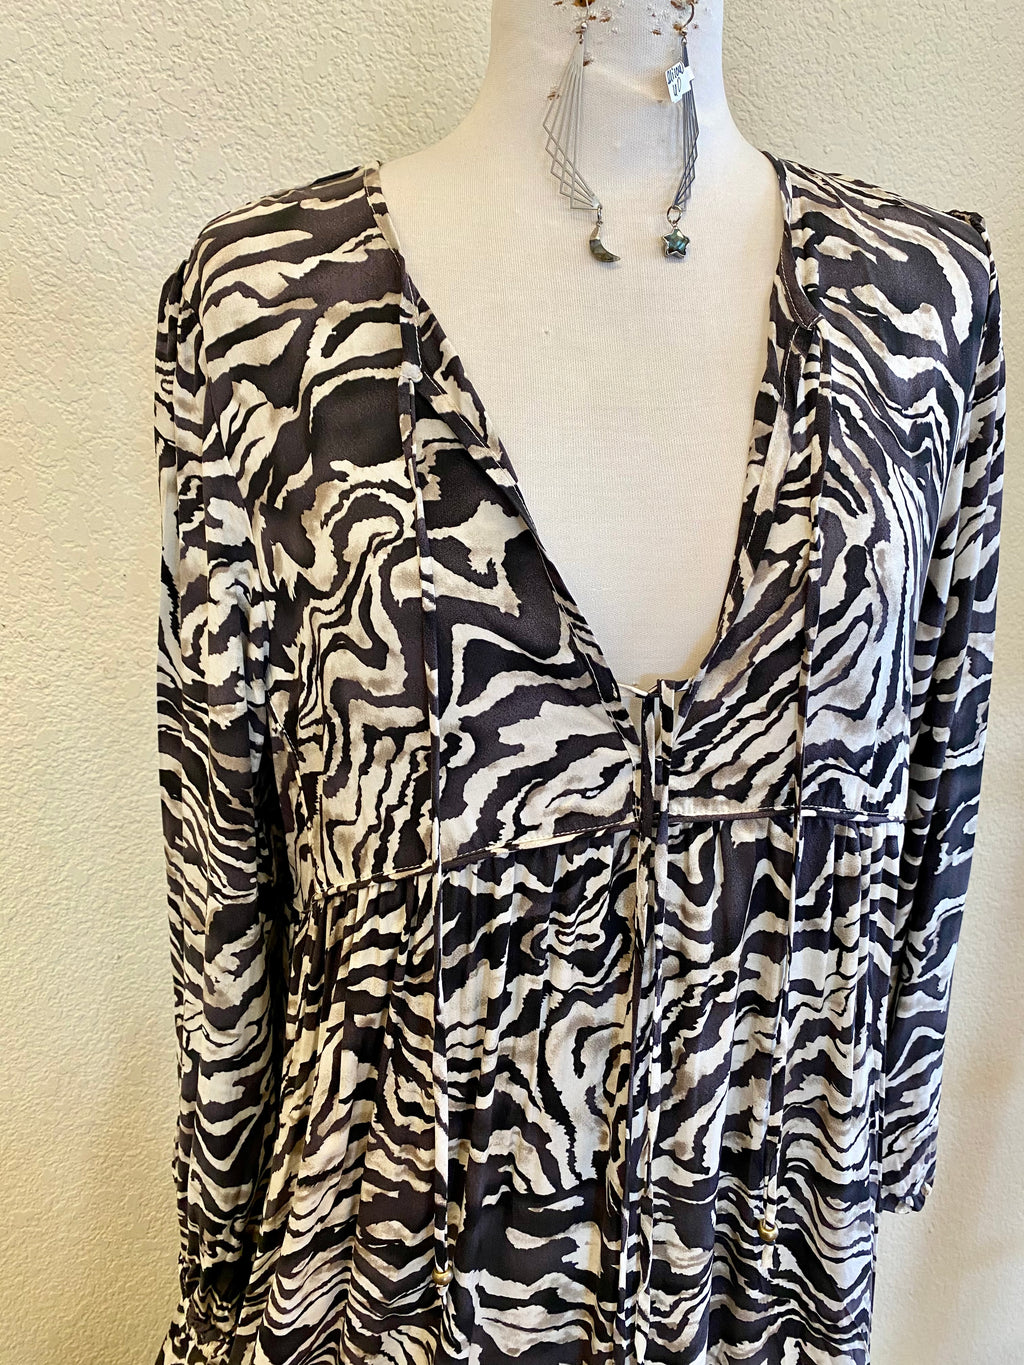 Zebra Statement Dress